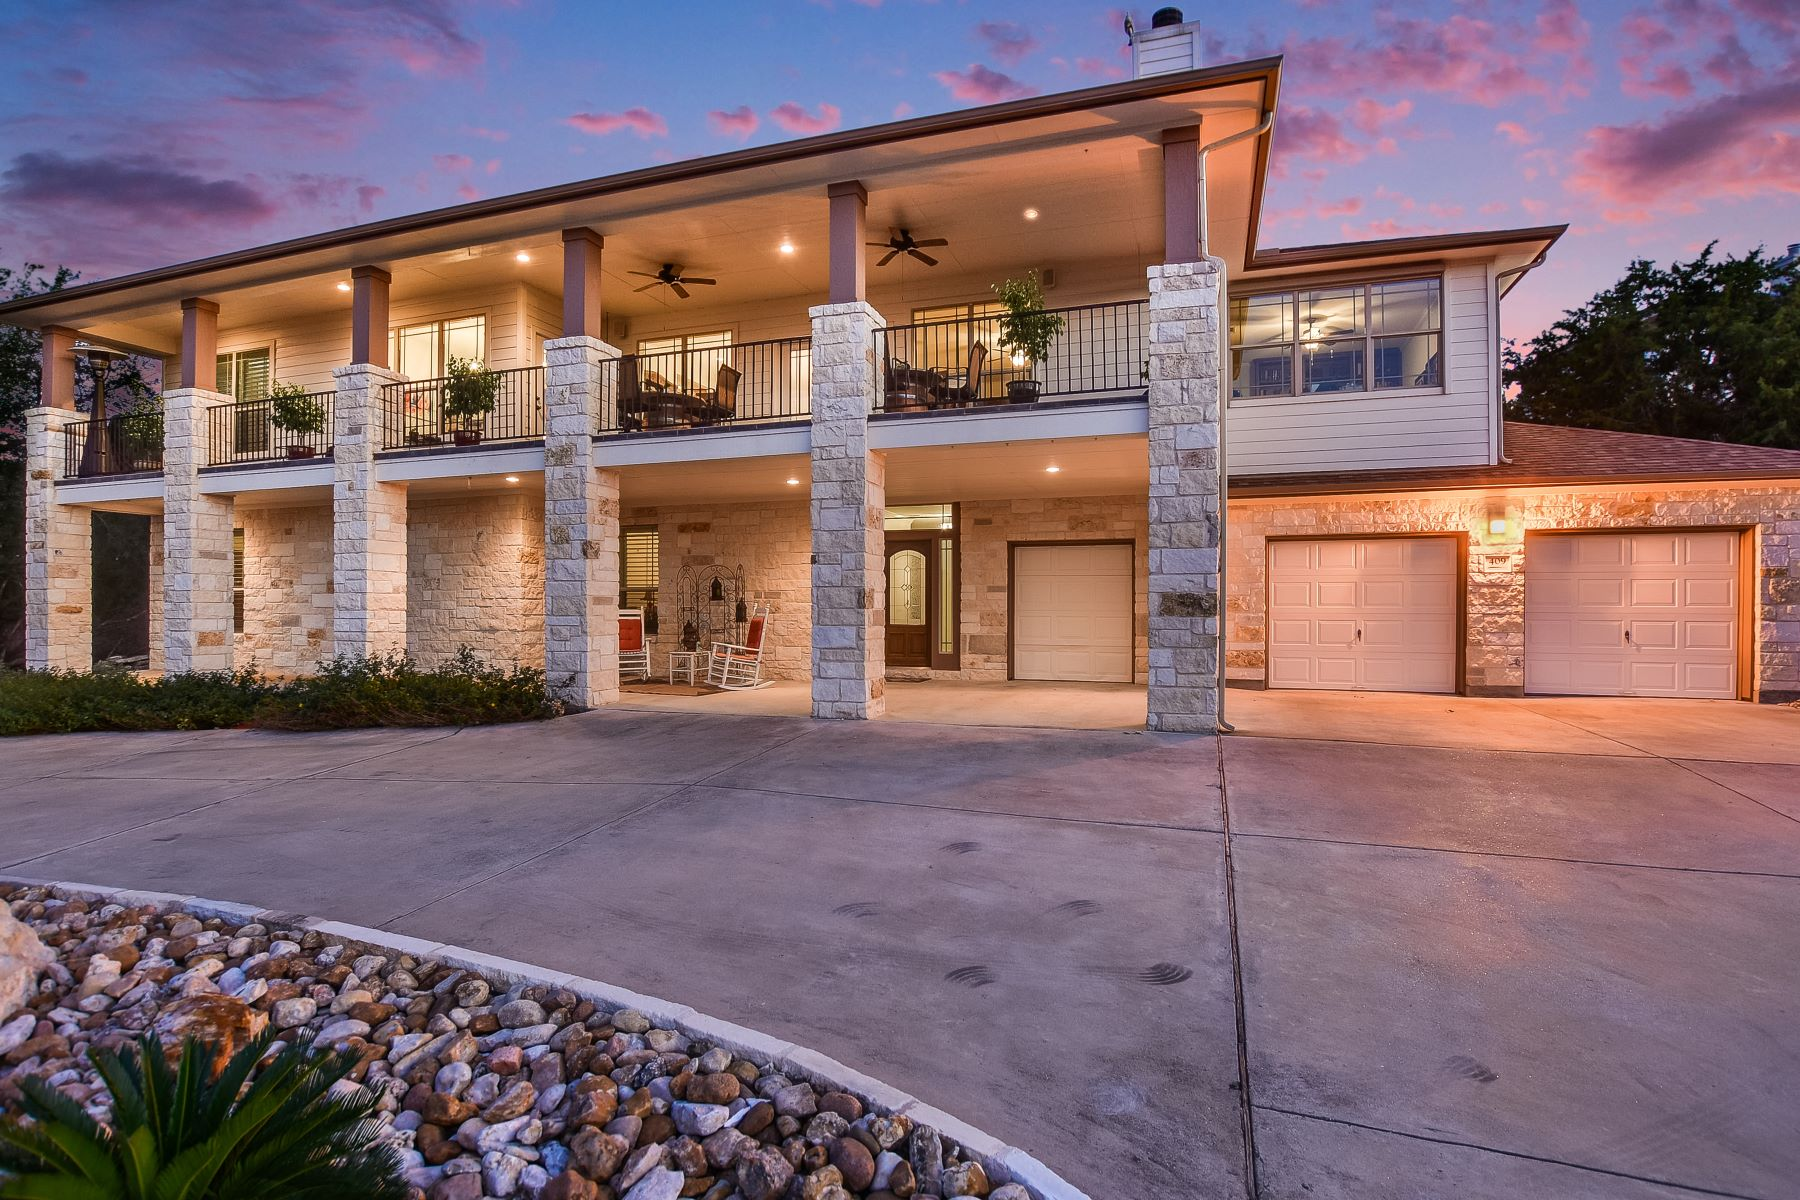 Single Family Home for Sale at Lake Views in Point Venture 409 Cascade Circle, Point Venture, Texas, 78645 United States